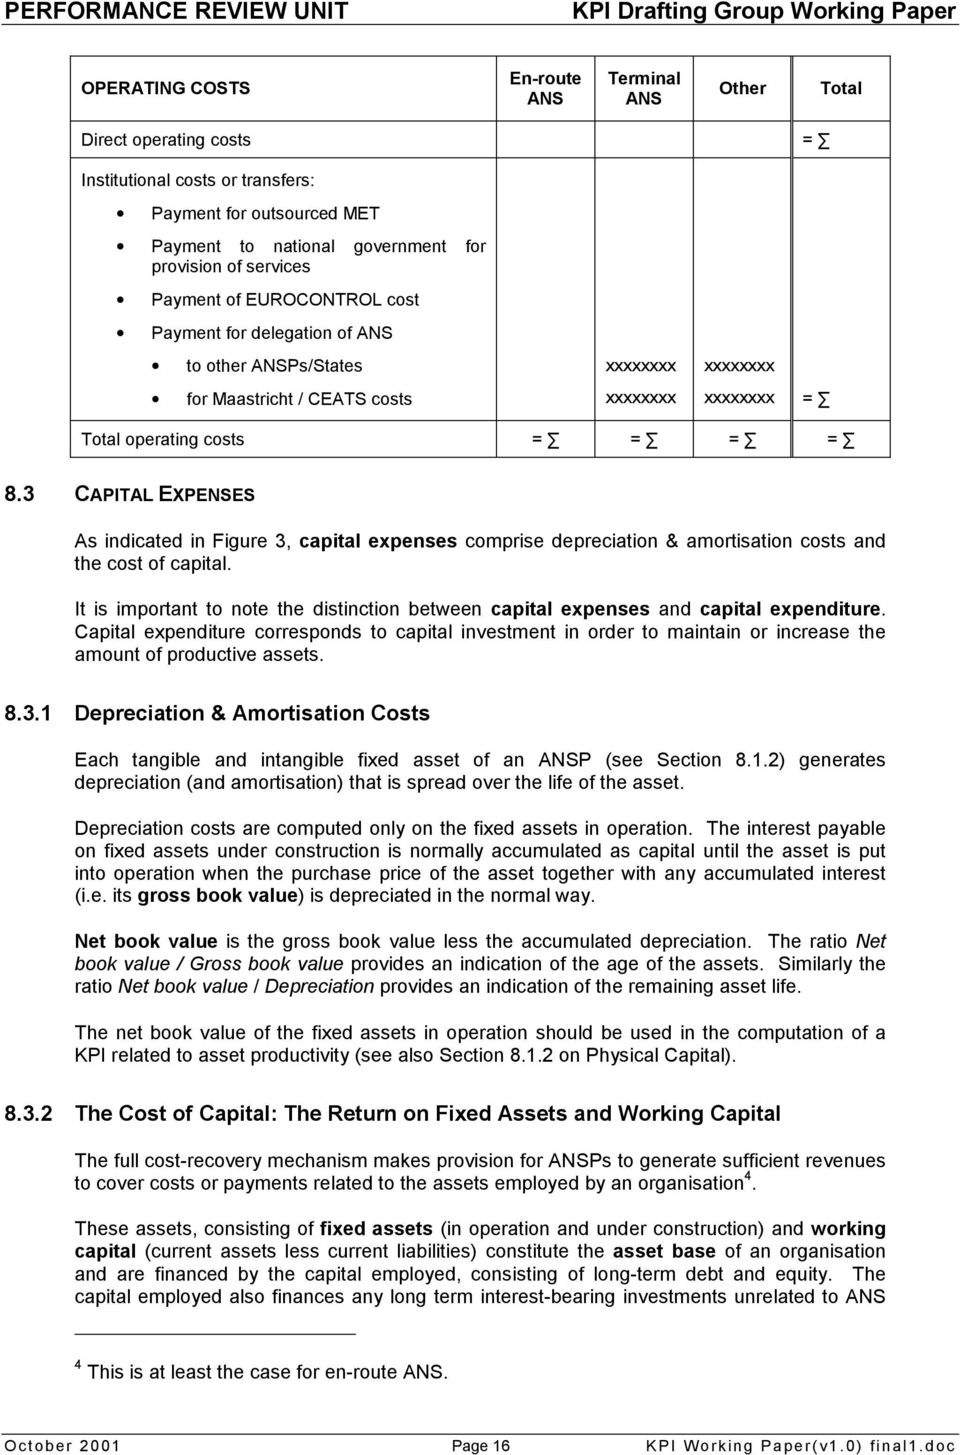 3 CAPITAL EXPENSES As indicated in Figure 3, capital expenses comprise depreciation & amortisation costs and the cost of capital.